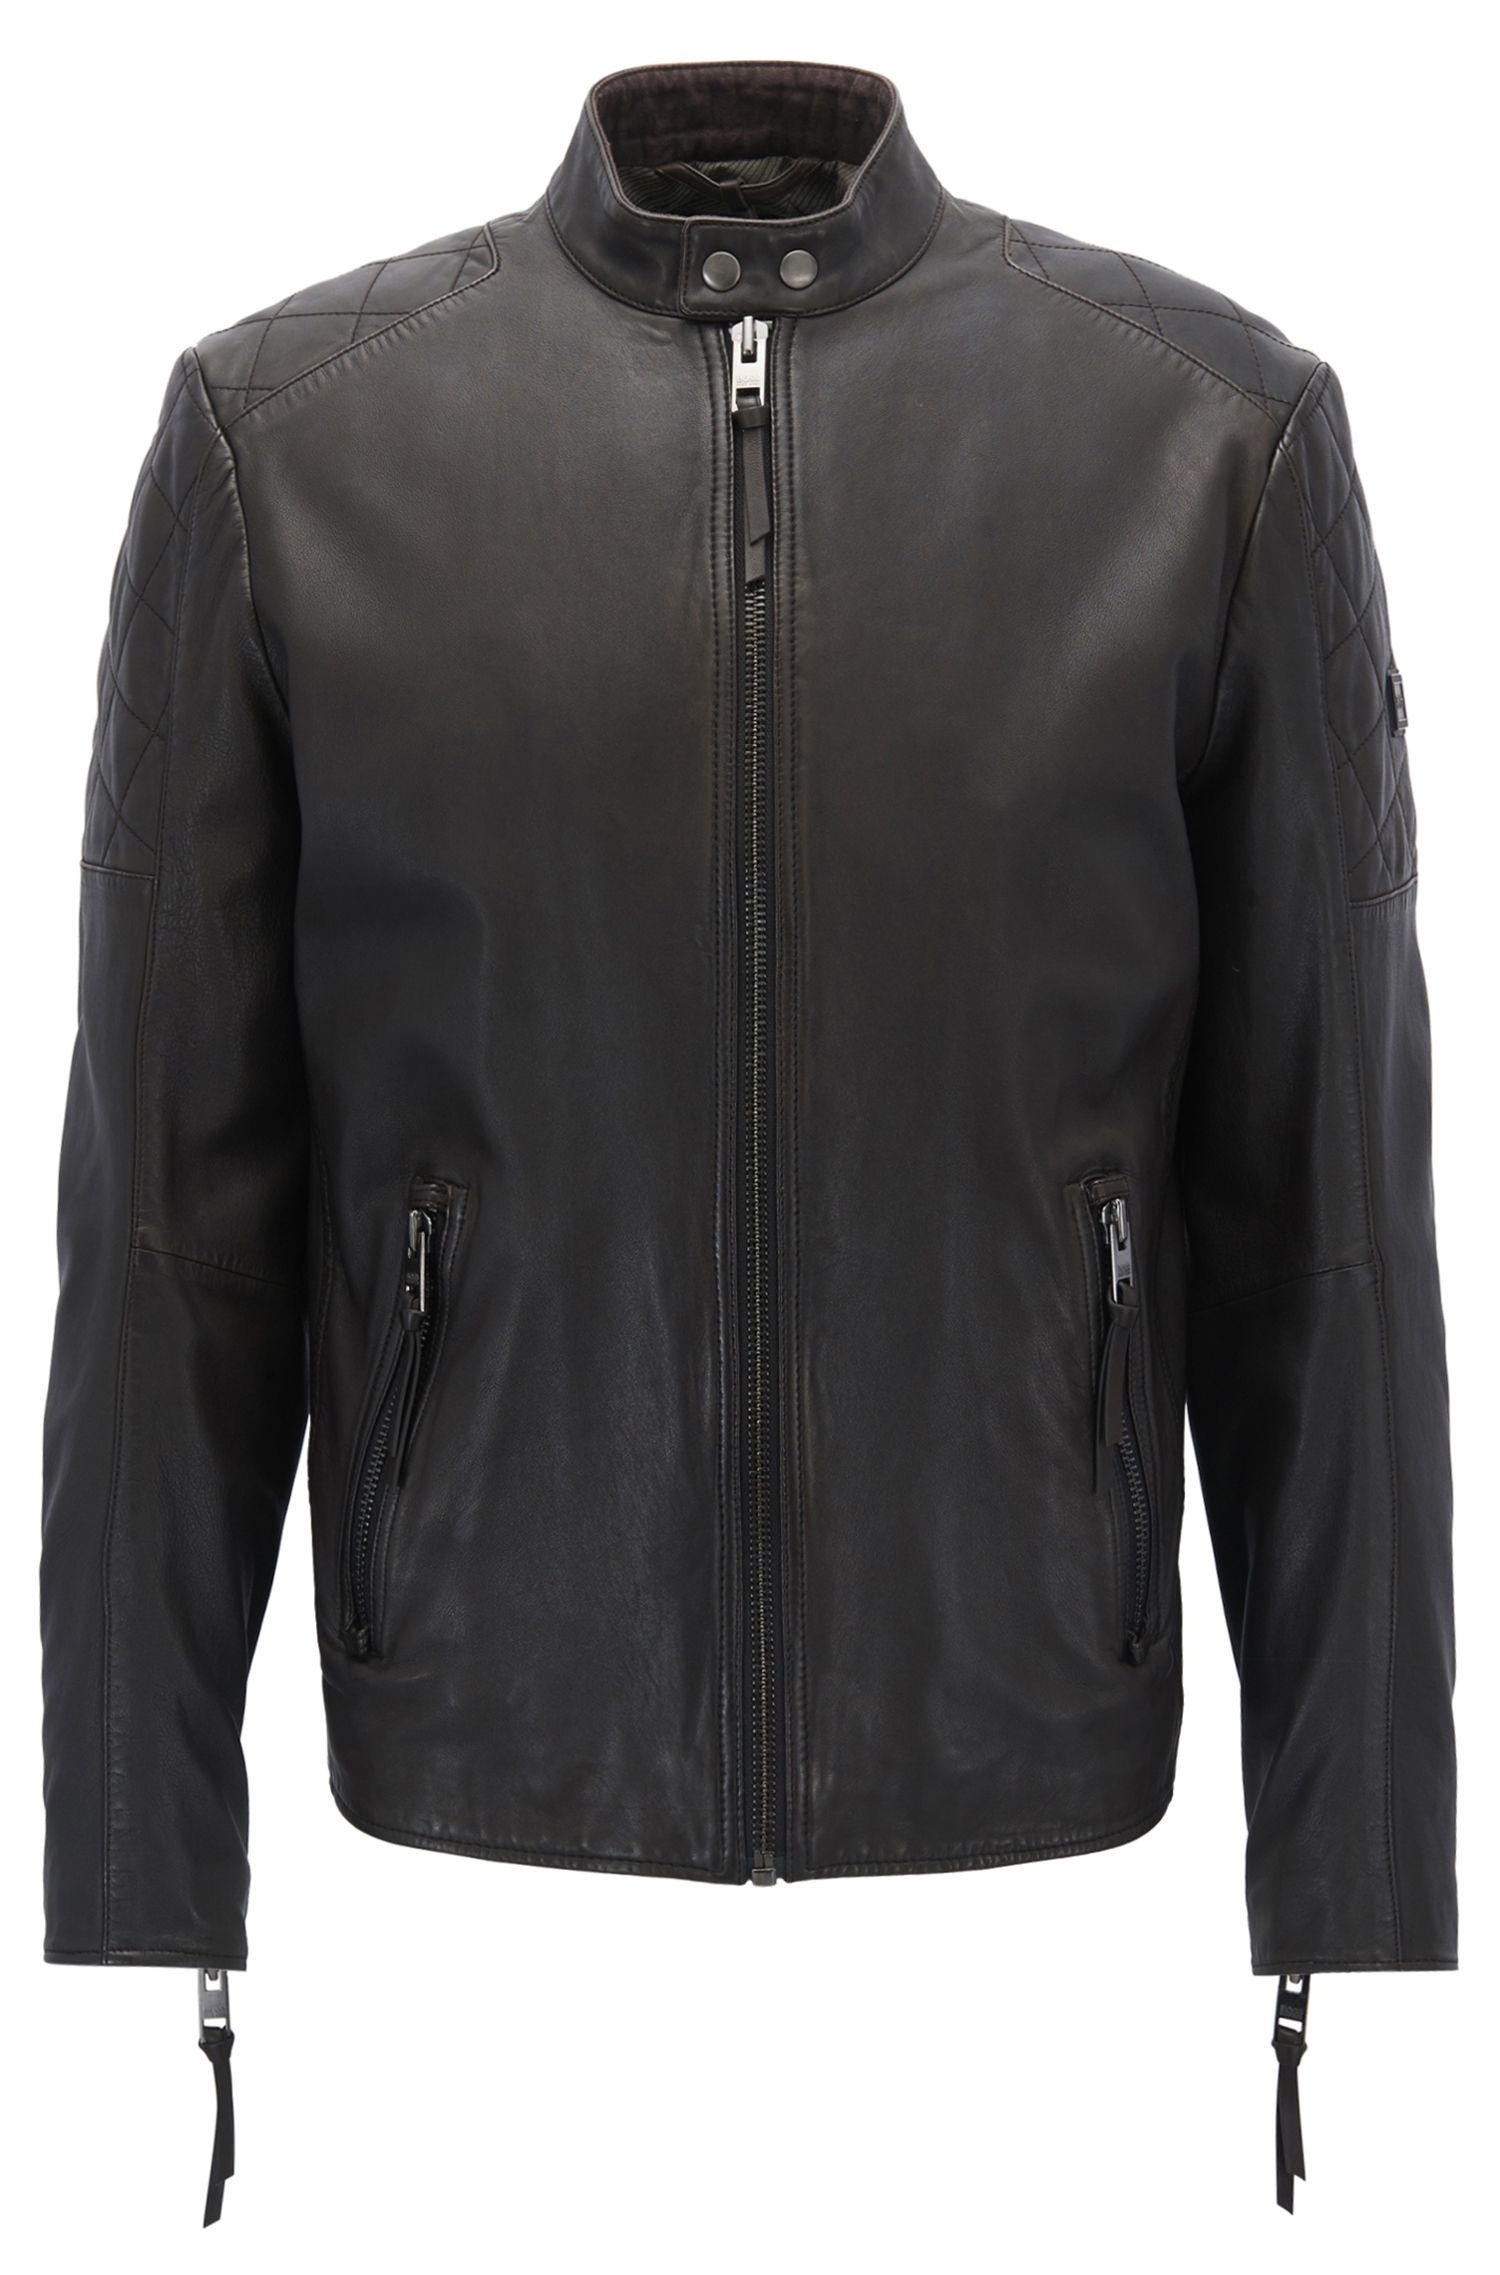 Giubbotto biker slim fit in pelle trattata a mano